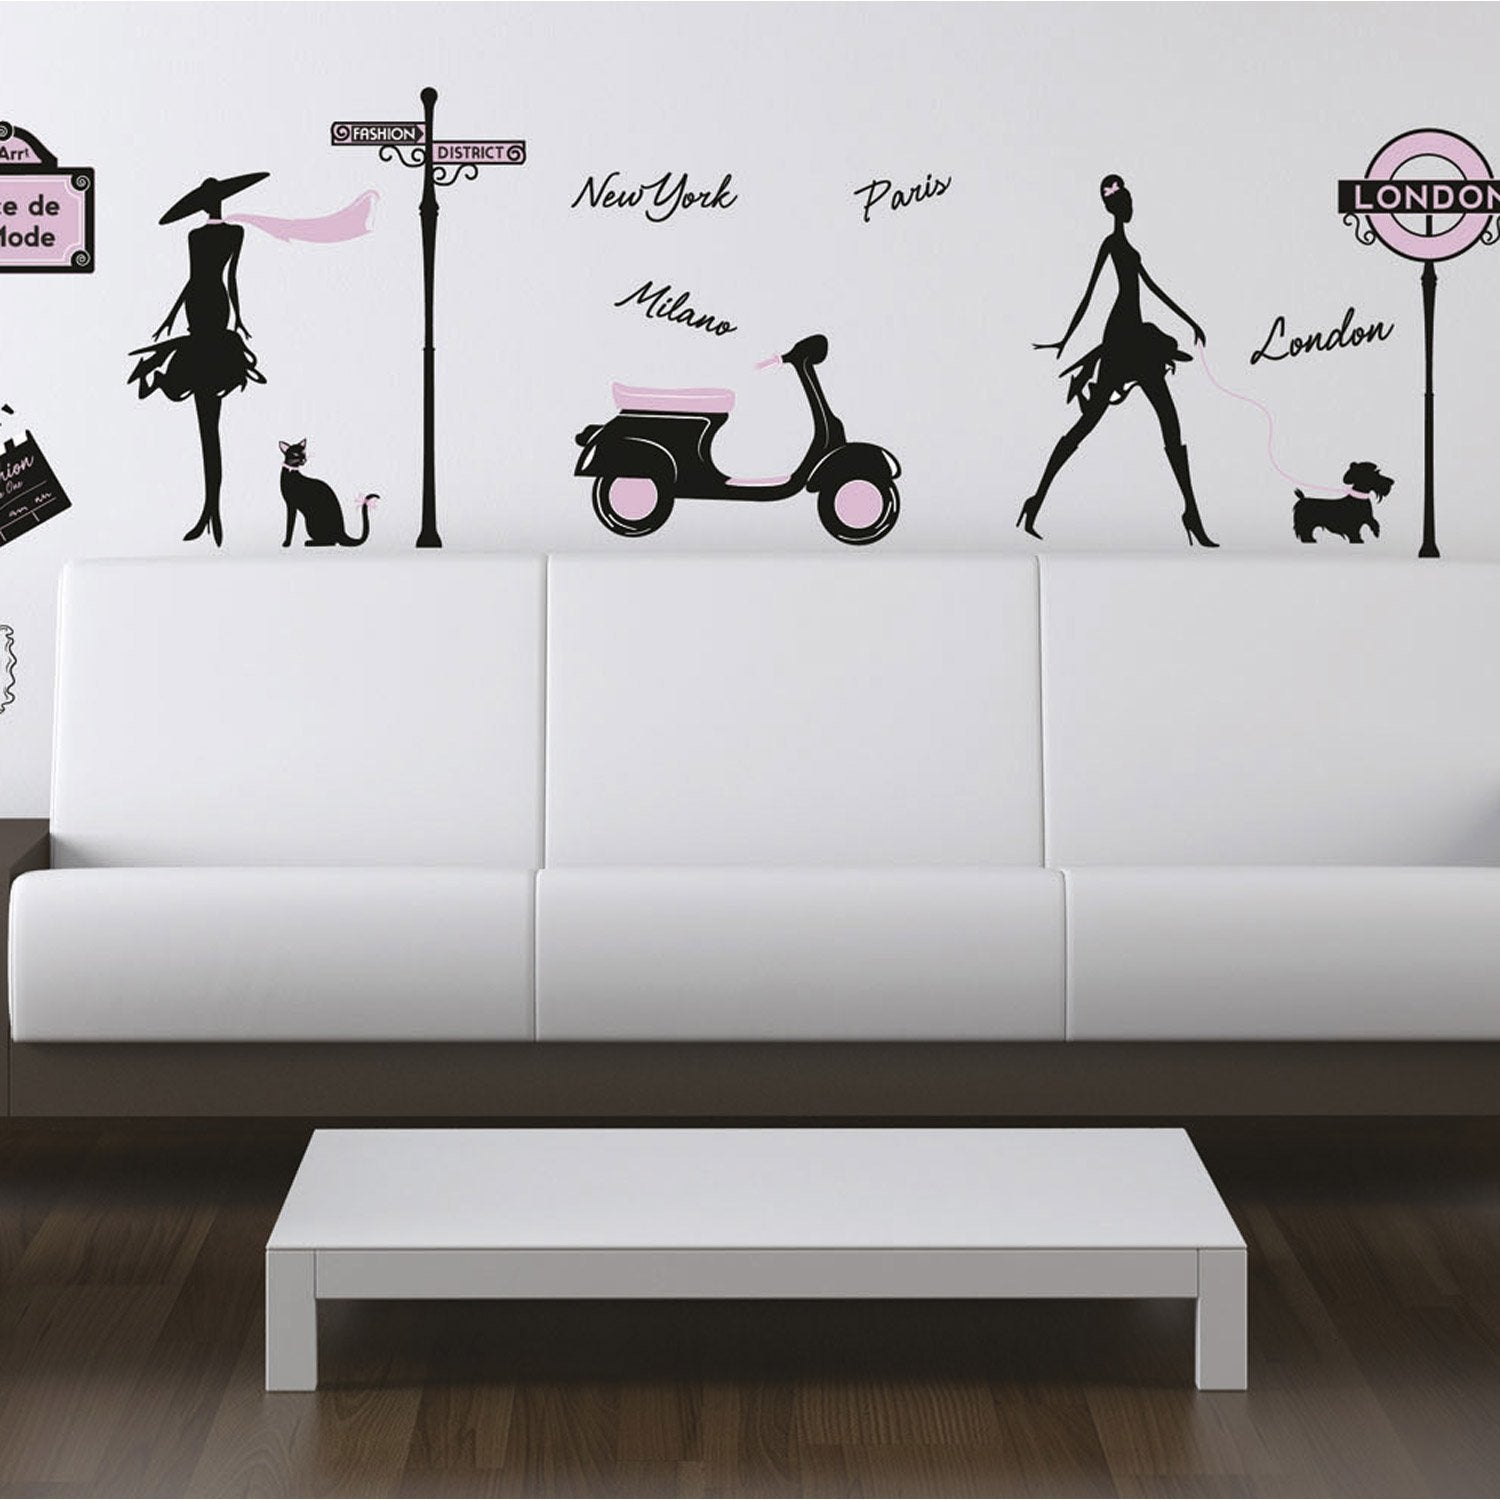 Sticker world fashion 50 cm x 70 cm leroy merlin - Leroy merlin stickers cuisine ...